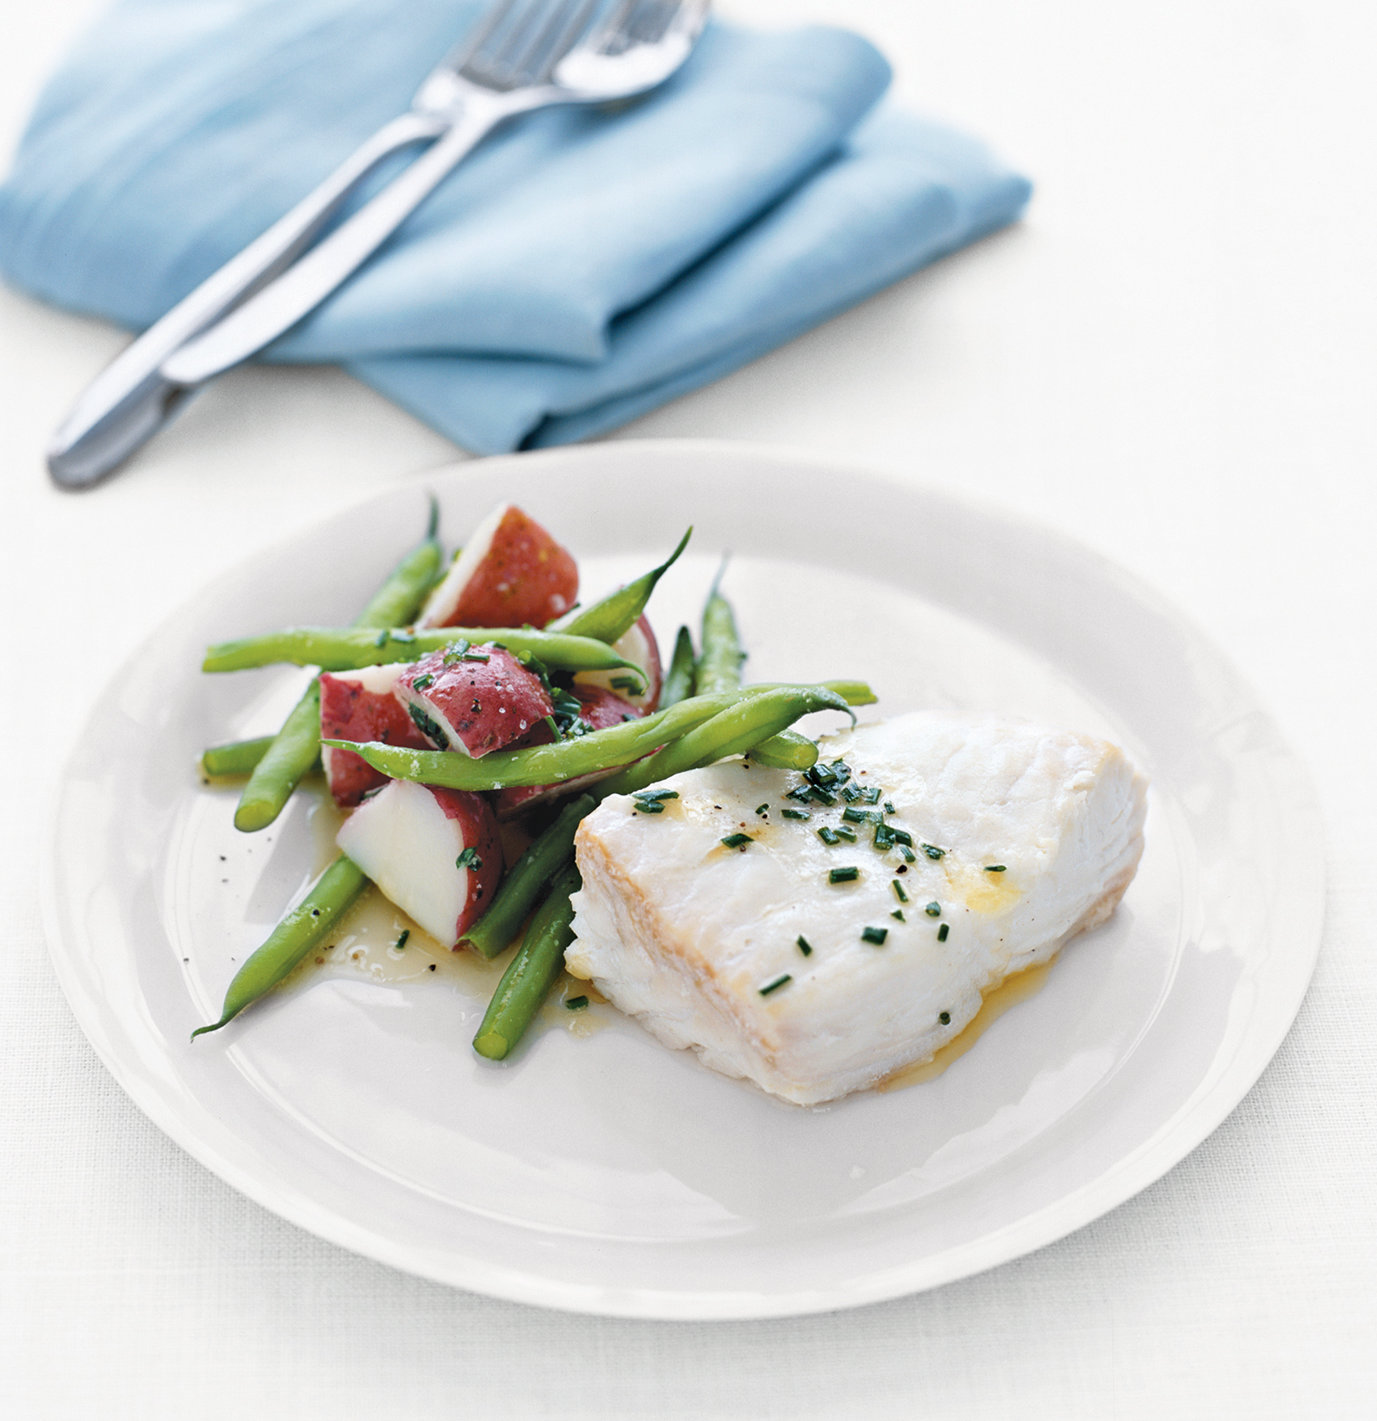 Quick Food Ideas: Poached Halibut With Green Beans and Red Potatoes